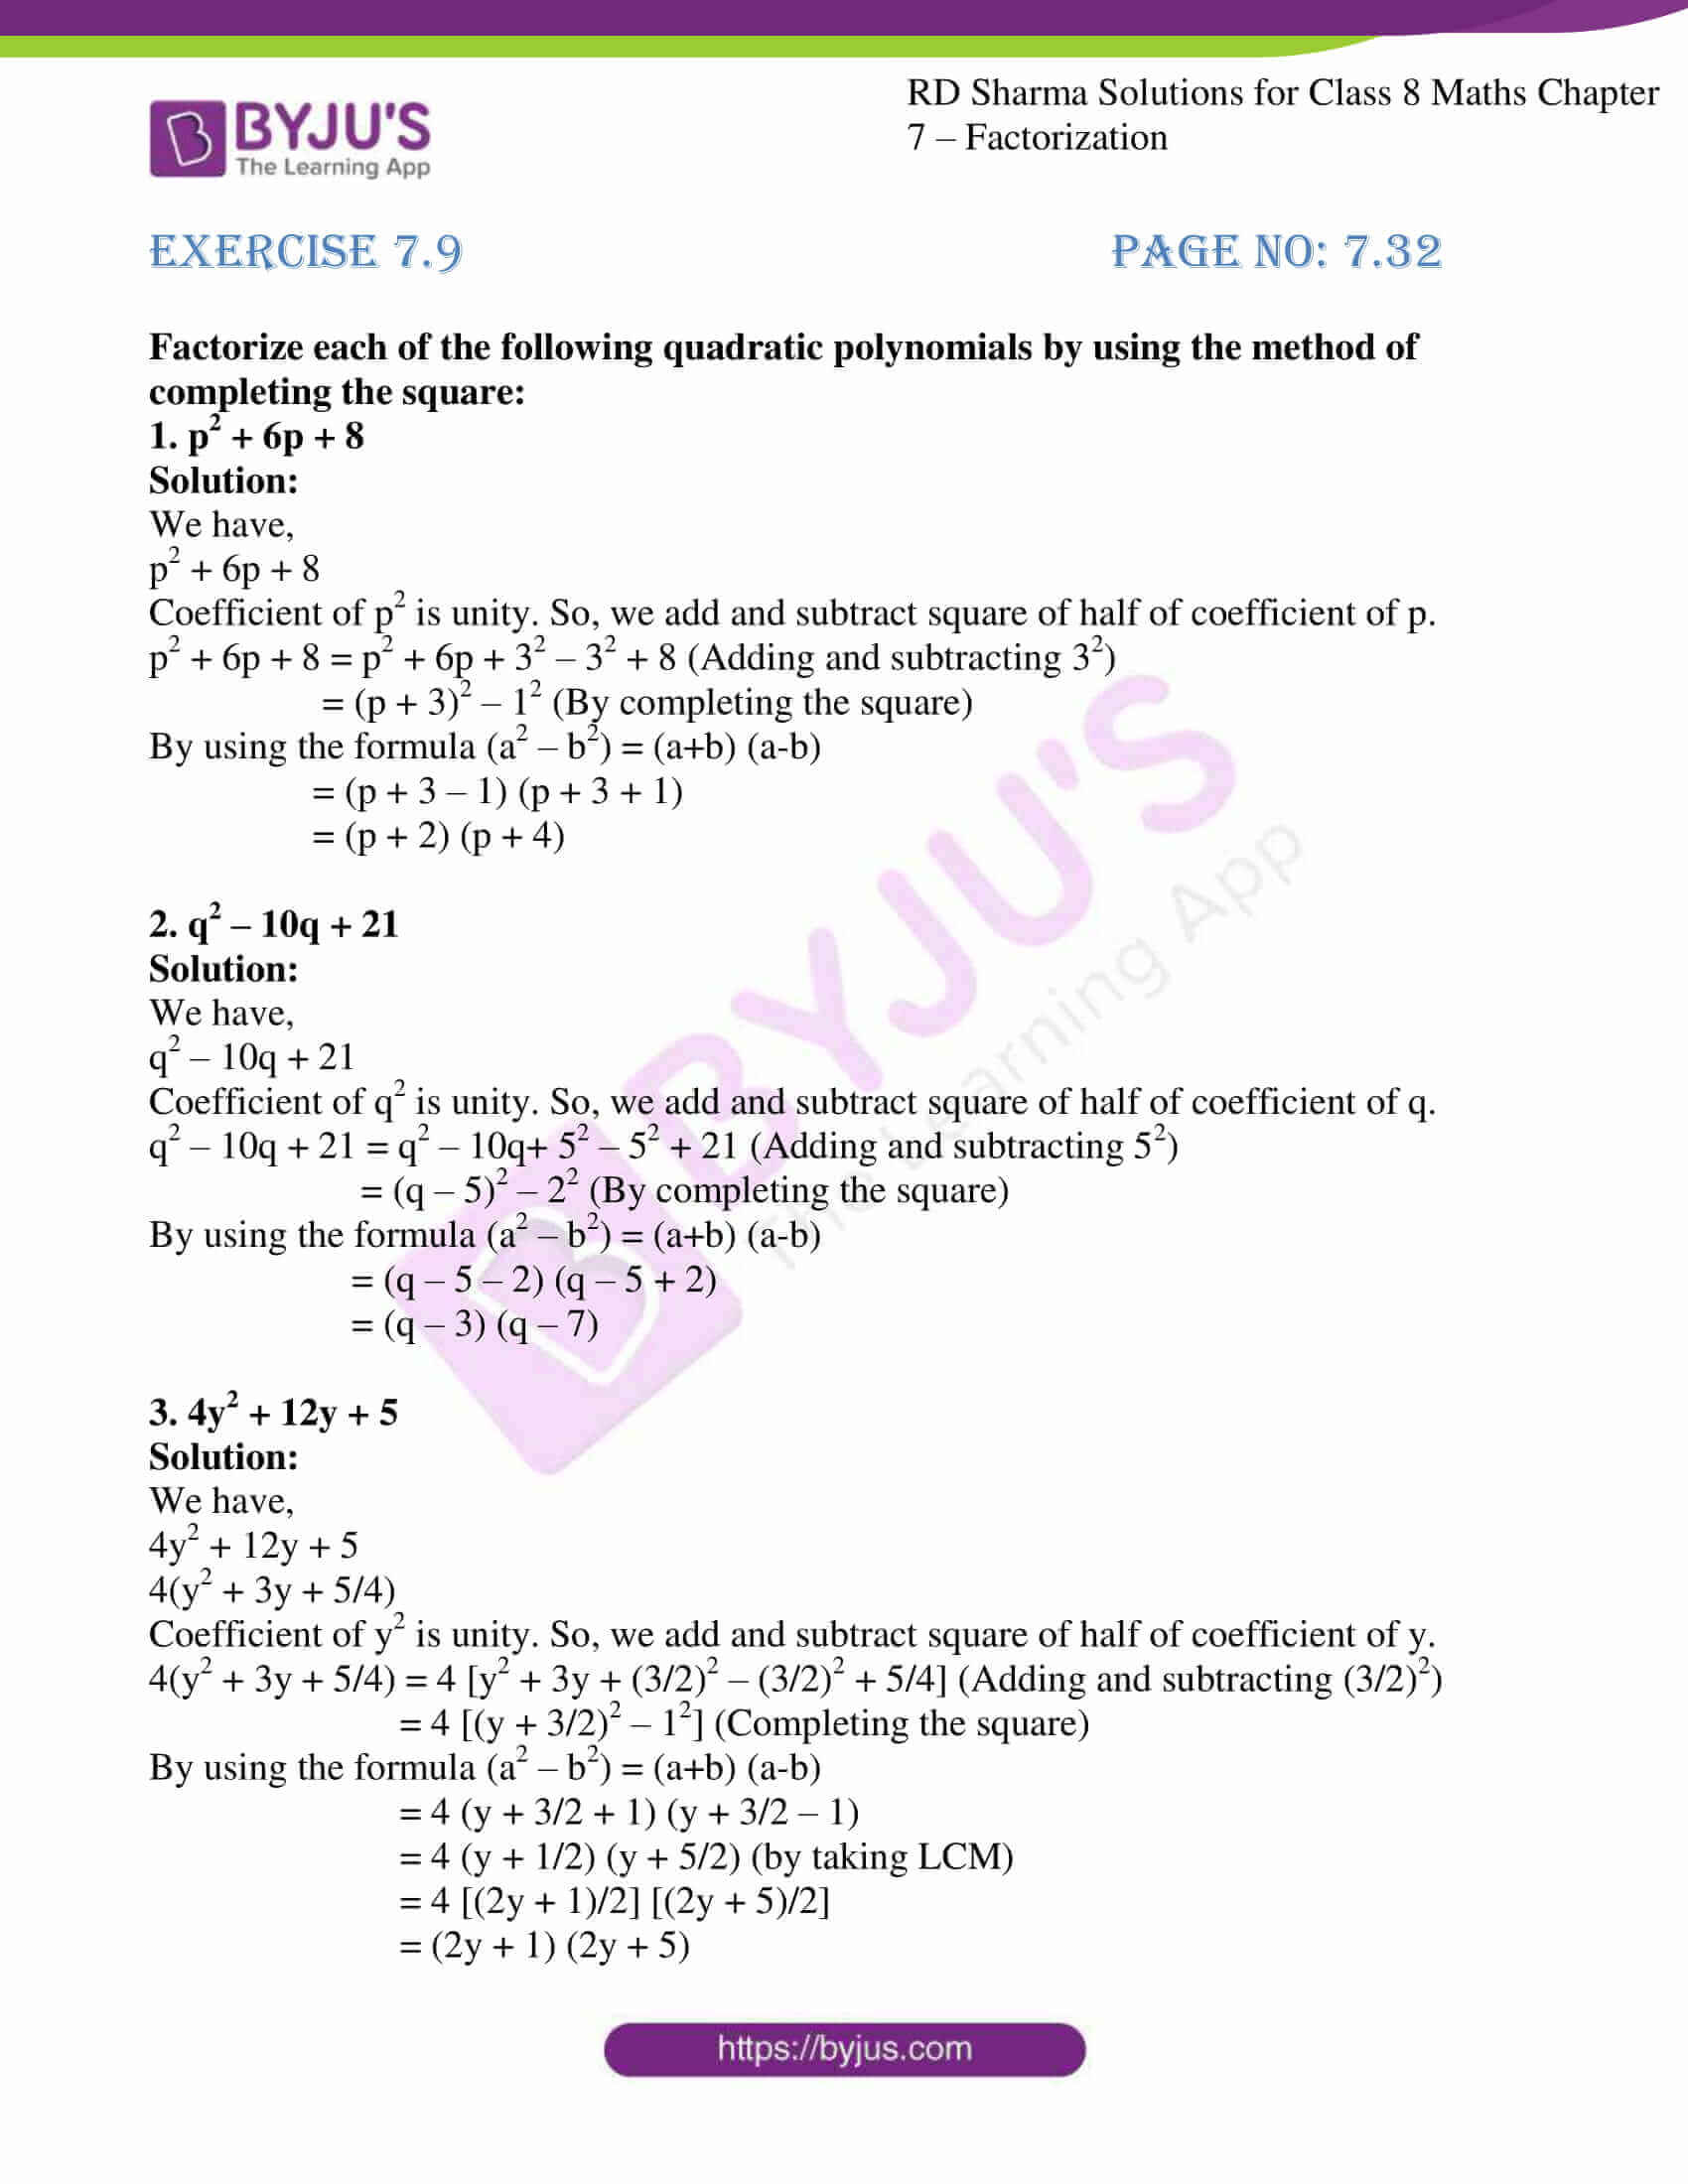 rd sharma class 8 maths chapter 7 exercise 9 1